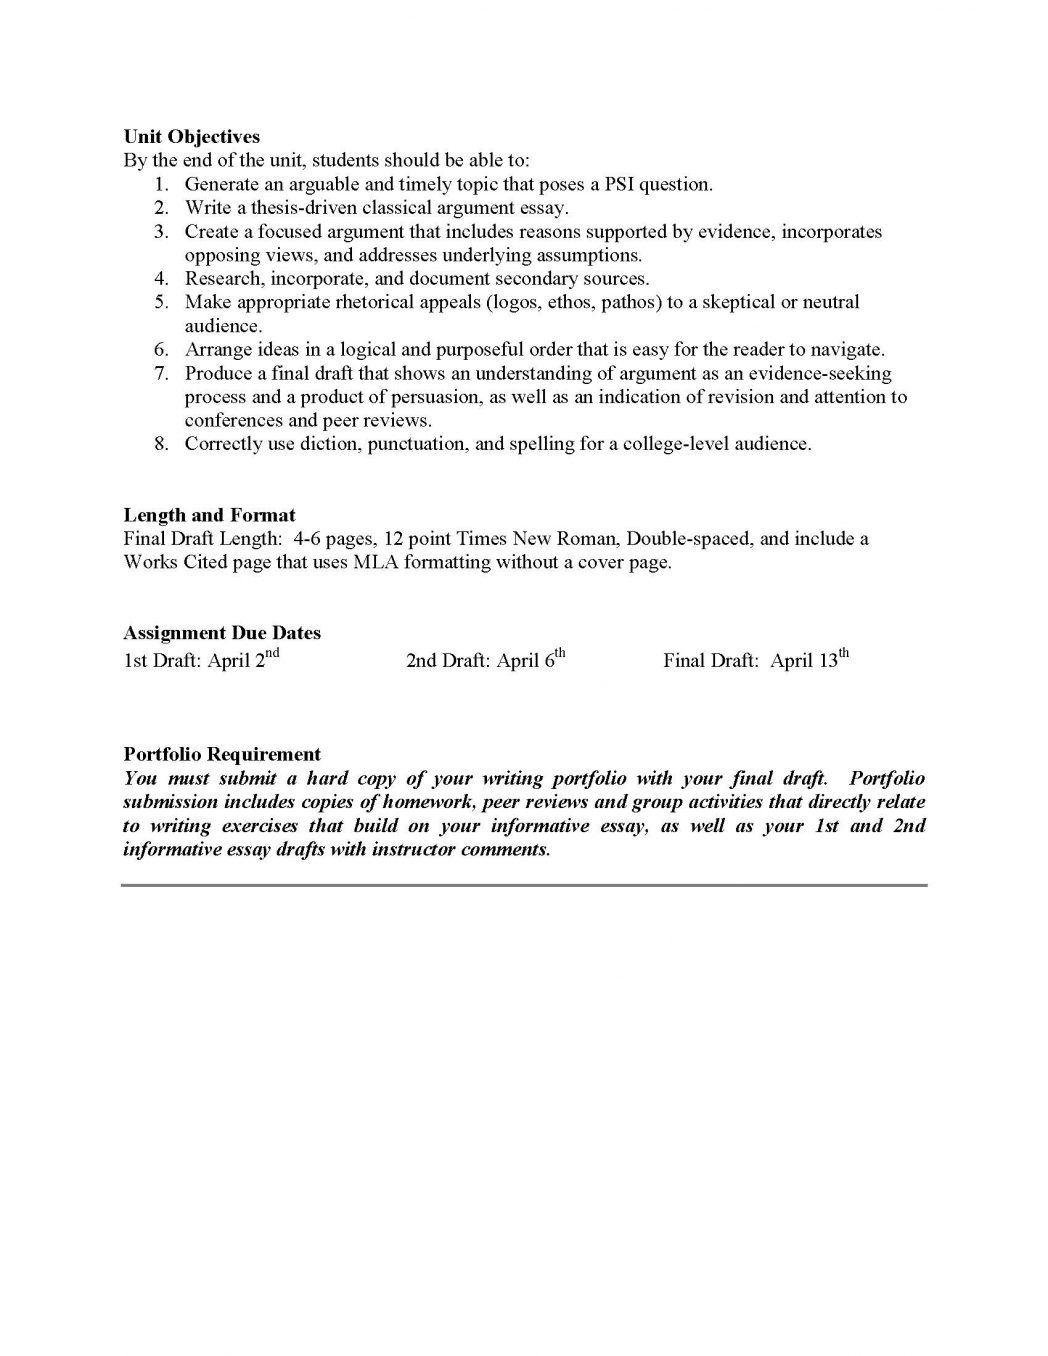 001 Homework Essay No Persuasive On Stem Cell Research Weekends Classical Argument Unit Assignment P Policy 1048x1356 Unusual Conclusion Help Writing Writer Full